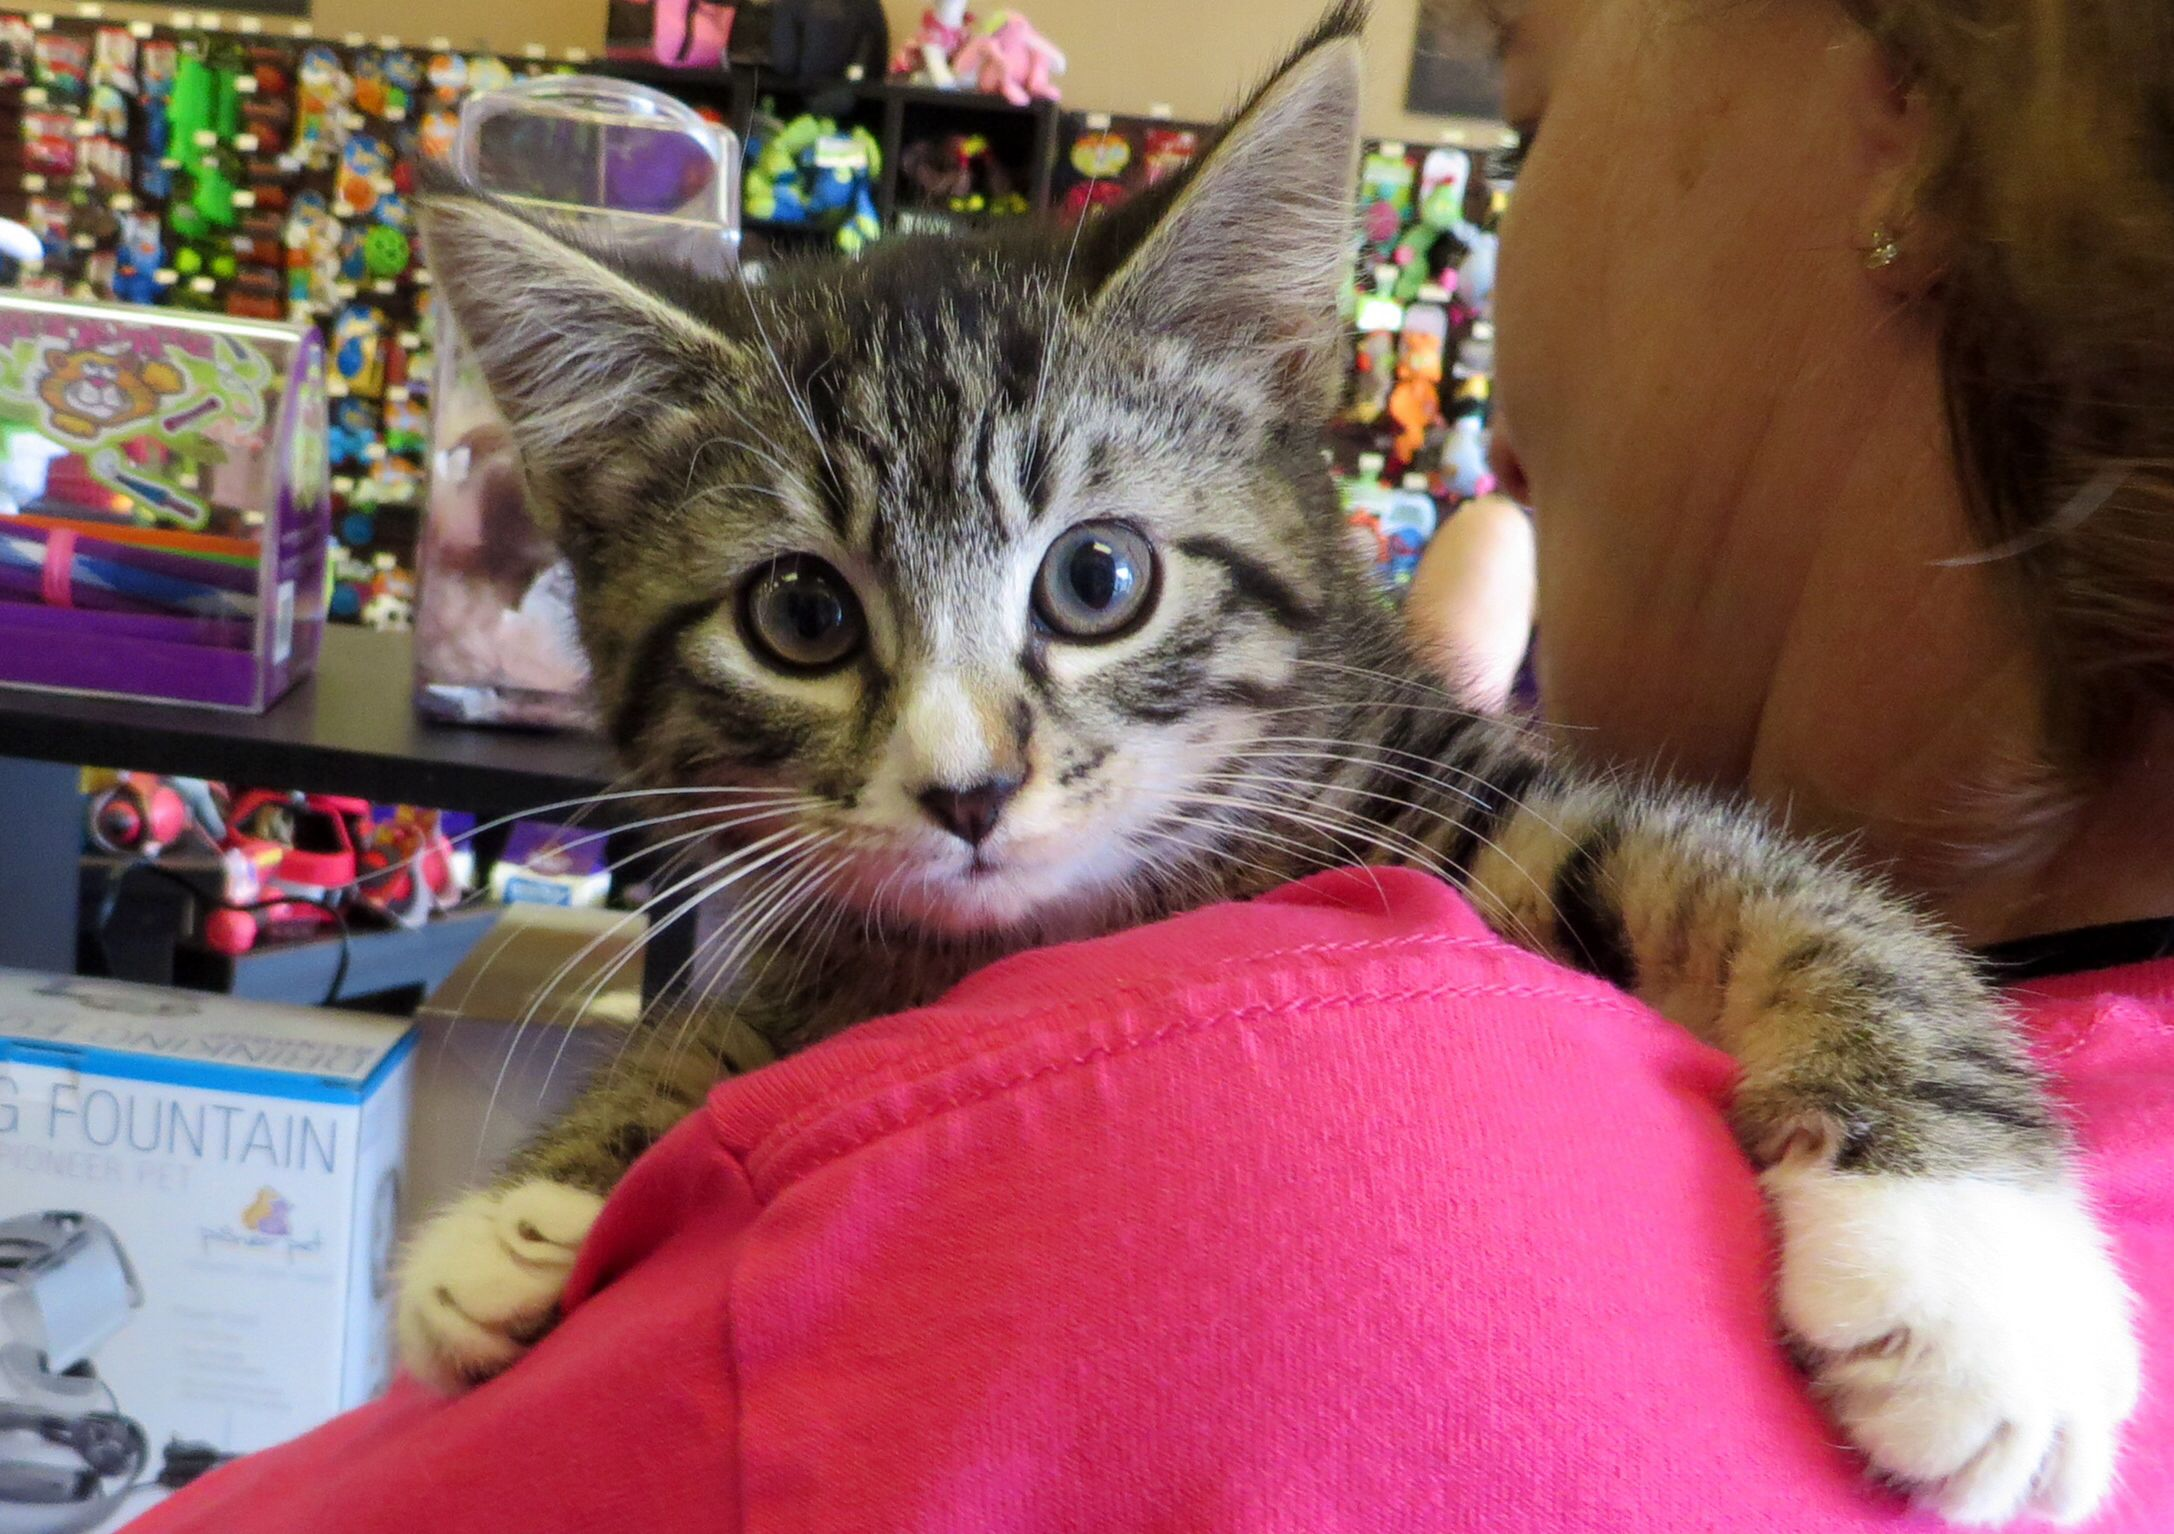 Bcas Kittens Who Have Been In Foster Homes And Are Spayed Neutered Can Be Adopted At Pet Valu On Rt 38 In The Lumberton Plaza Kit Kitten Adoption Kittens Cats